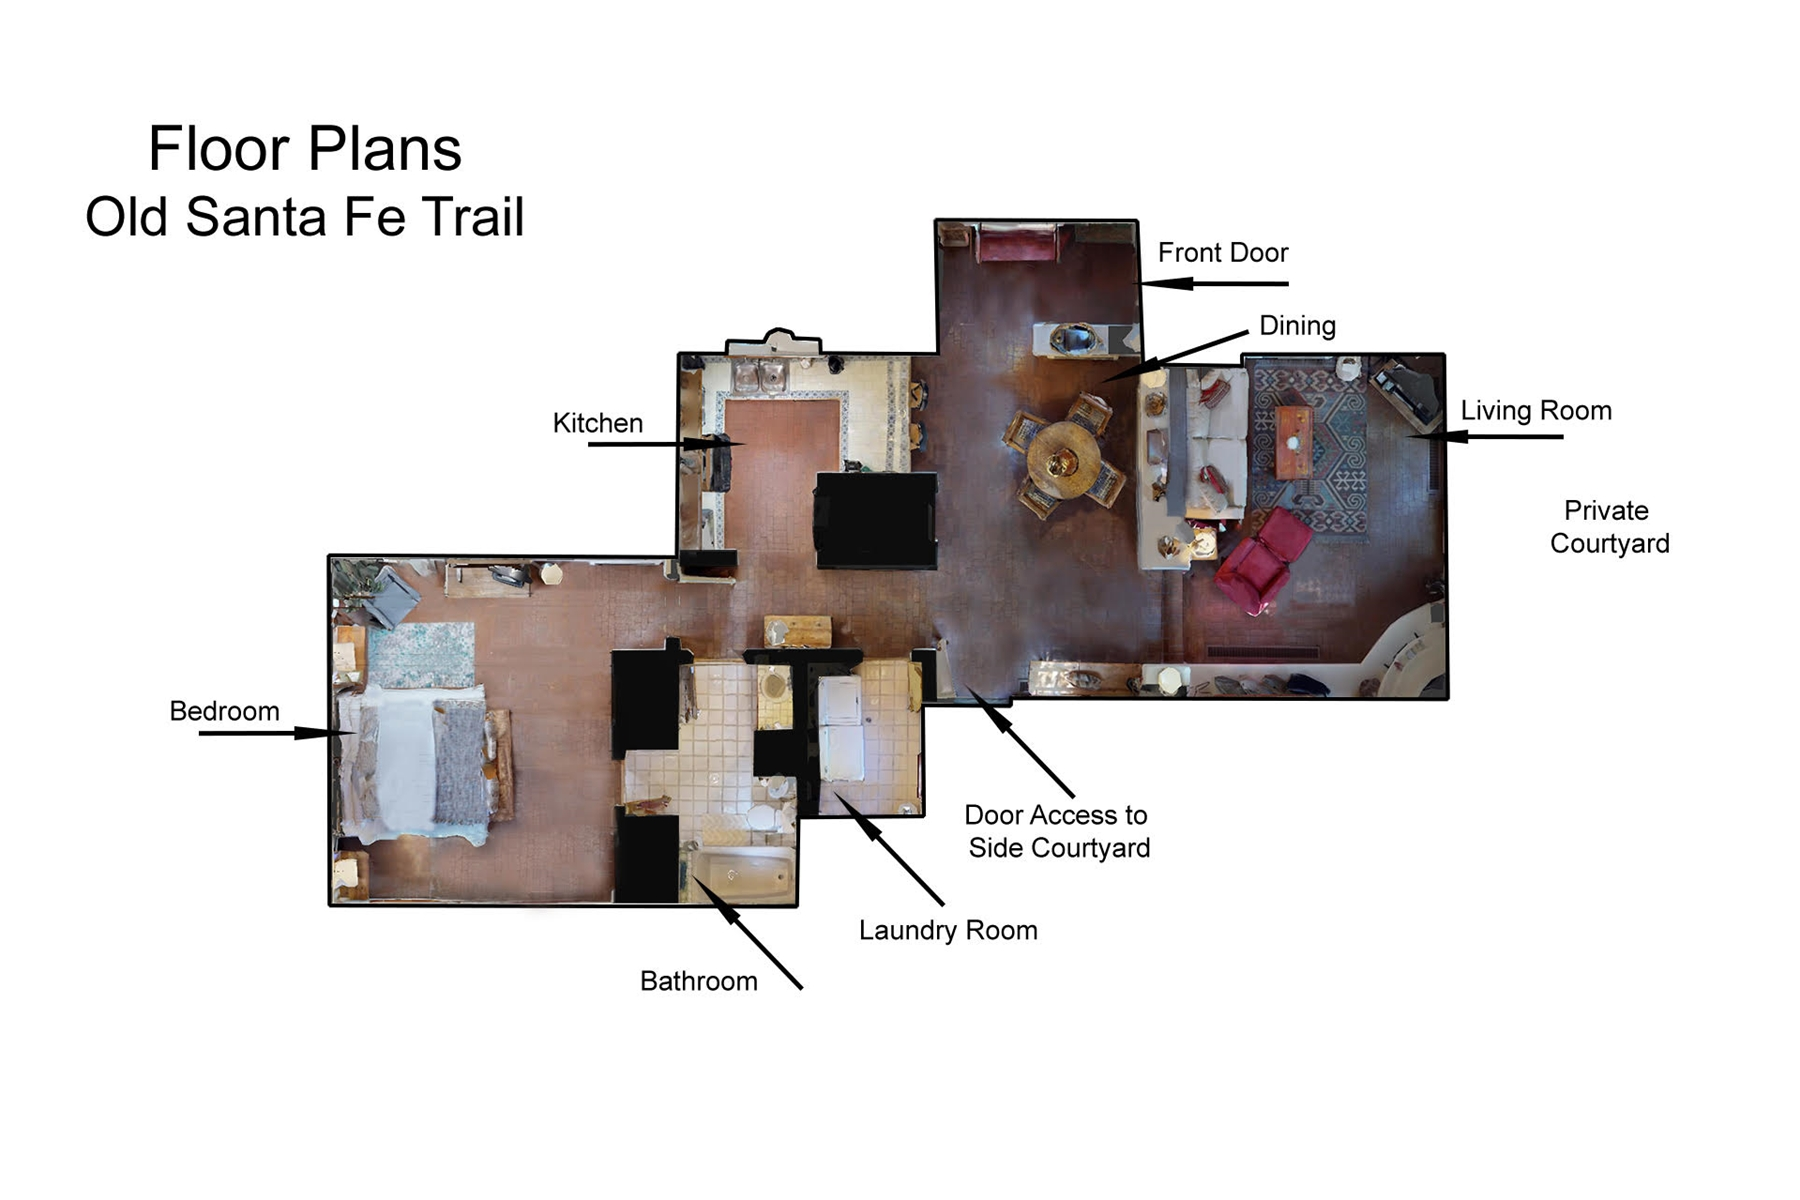 Floor Plan for Old Santa Fe Trail